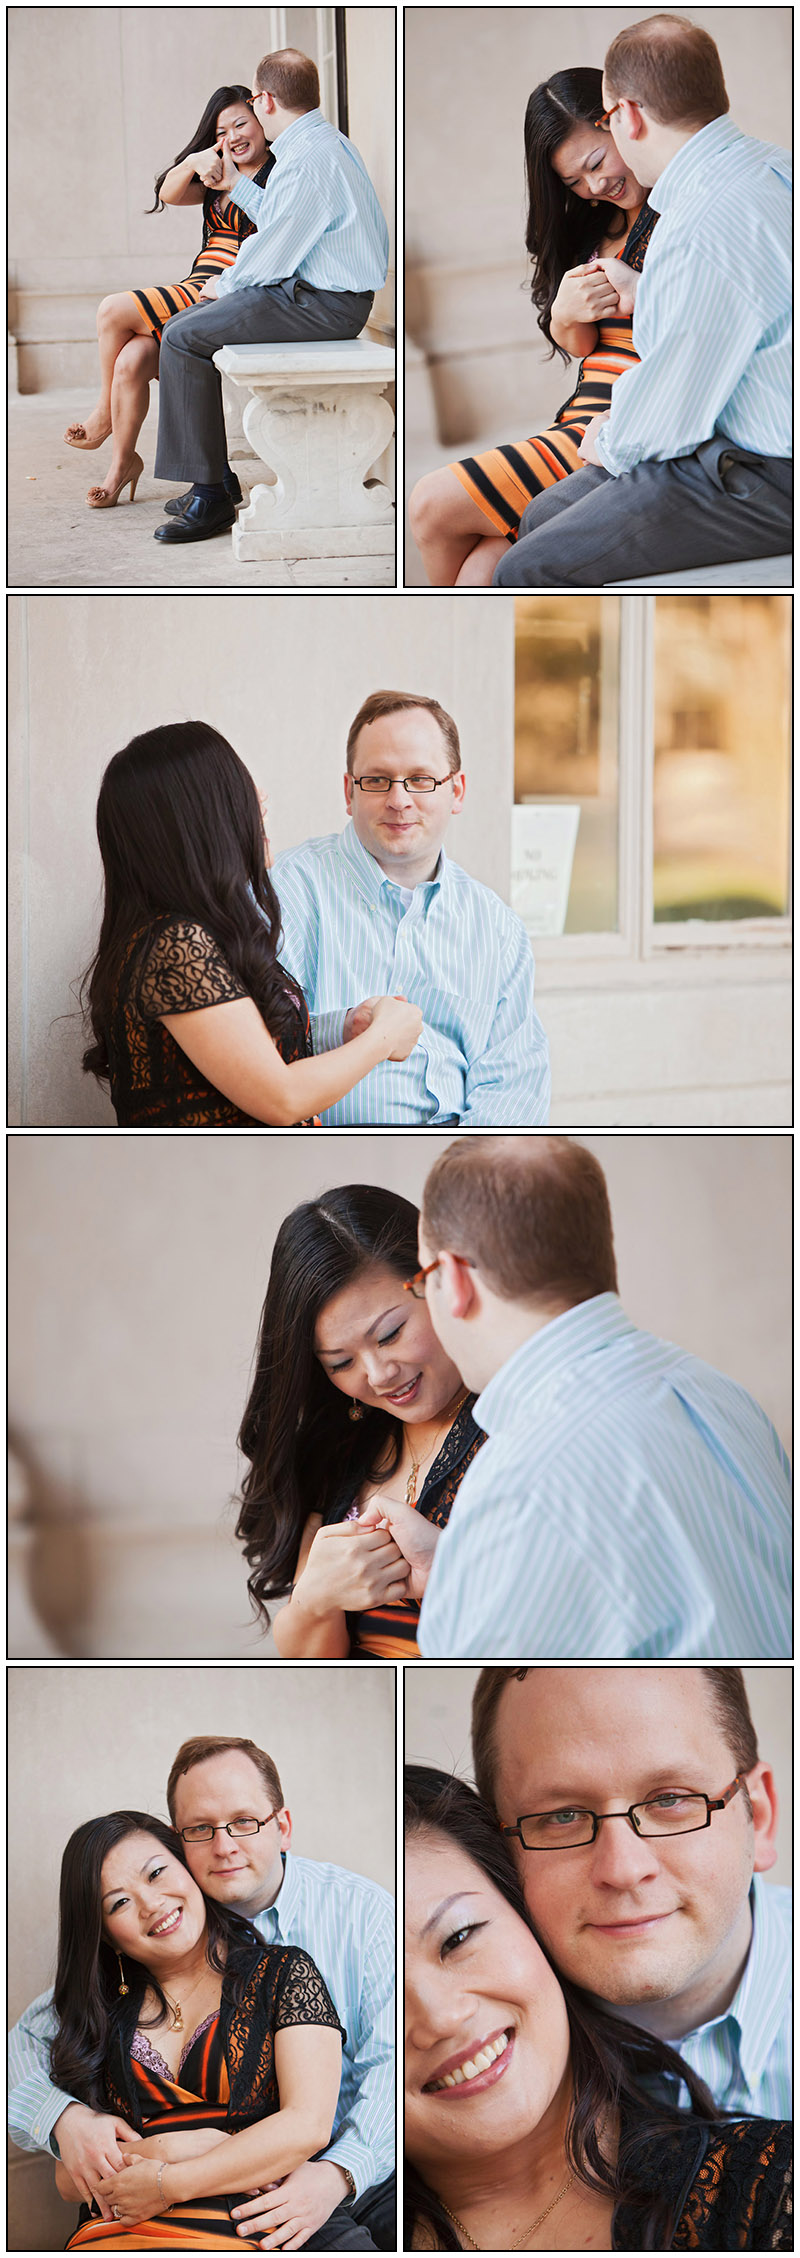 MIT ENGAGEMENT PHOTOGRAPHY | BOSTON WEDDING PHOTOGRAPHERS